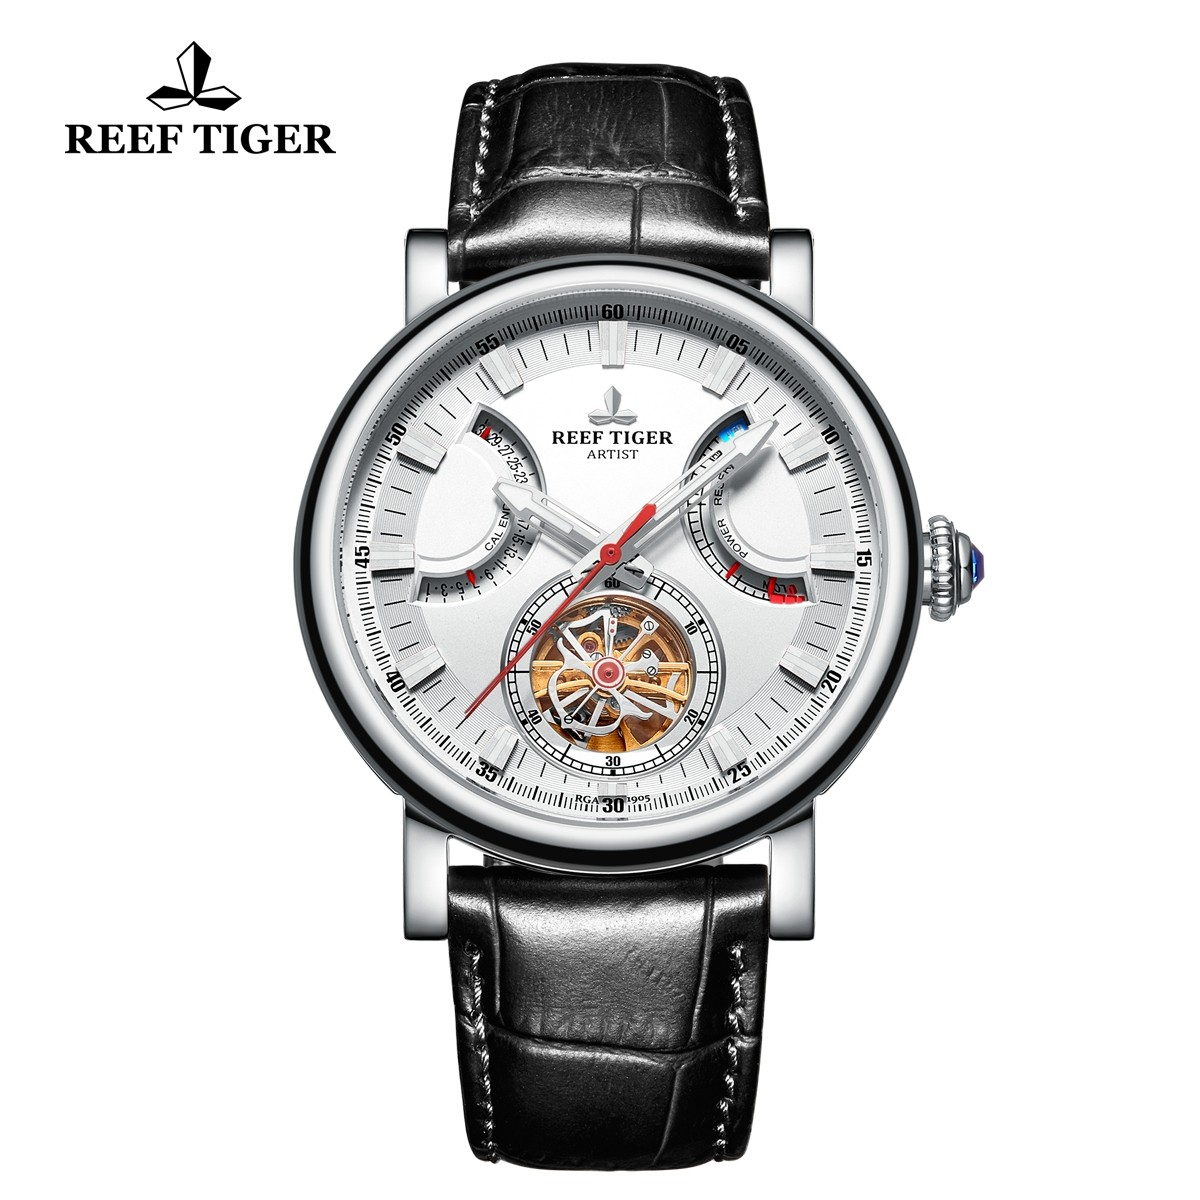 Artist Photographer 44mm Steel White Dial Black Leather Strap RGA1950-YWB